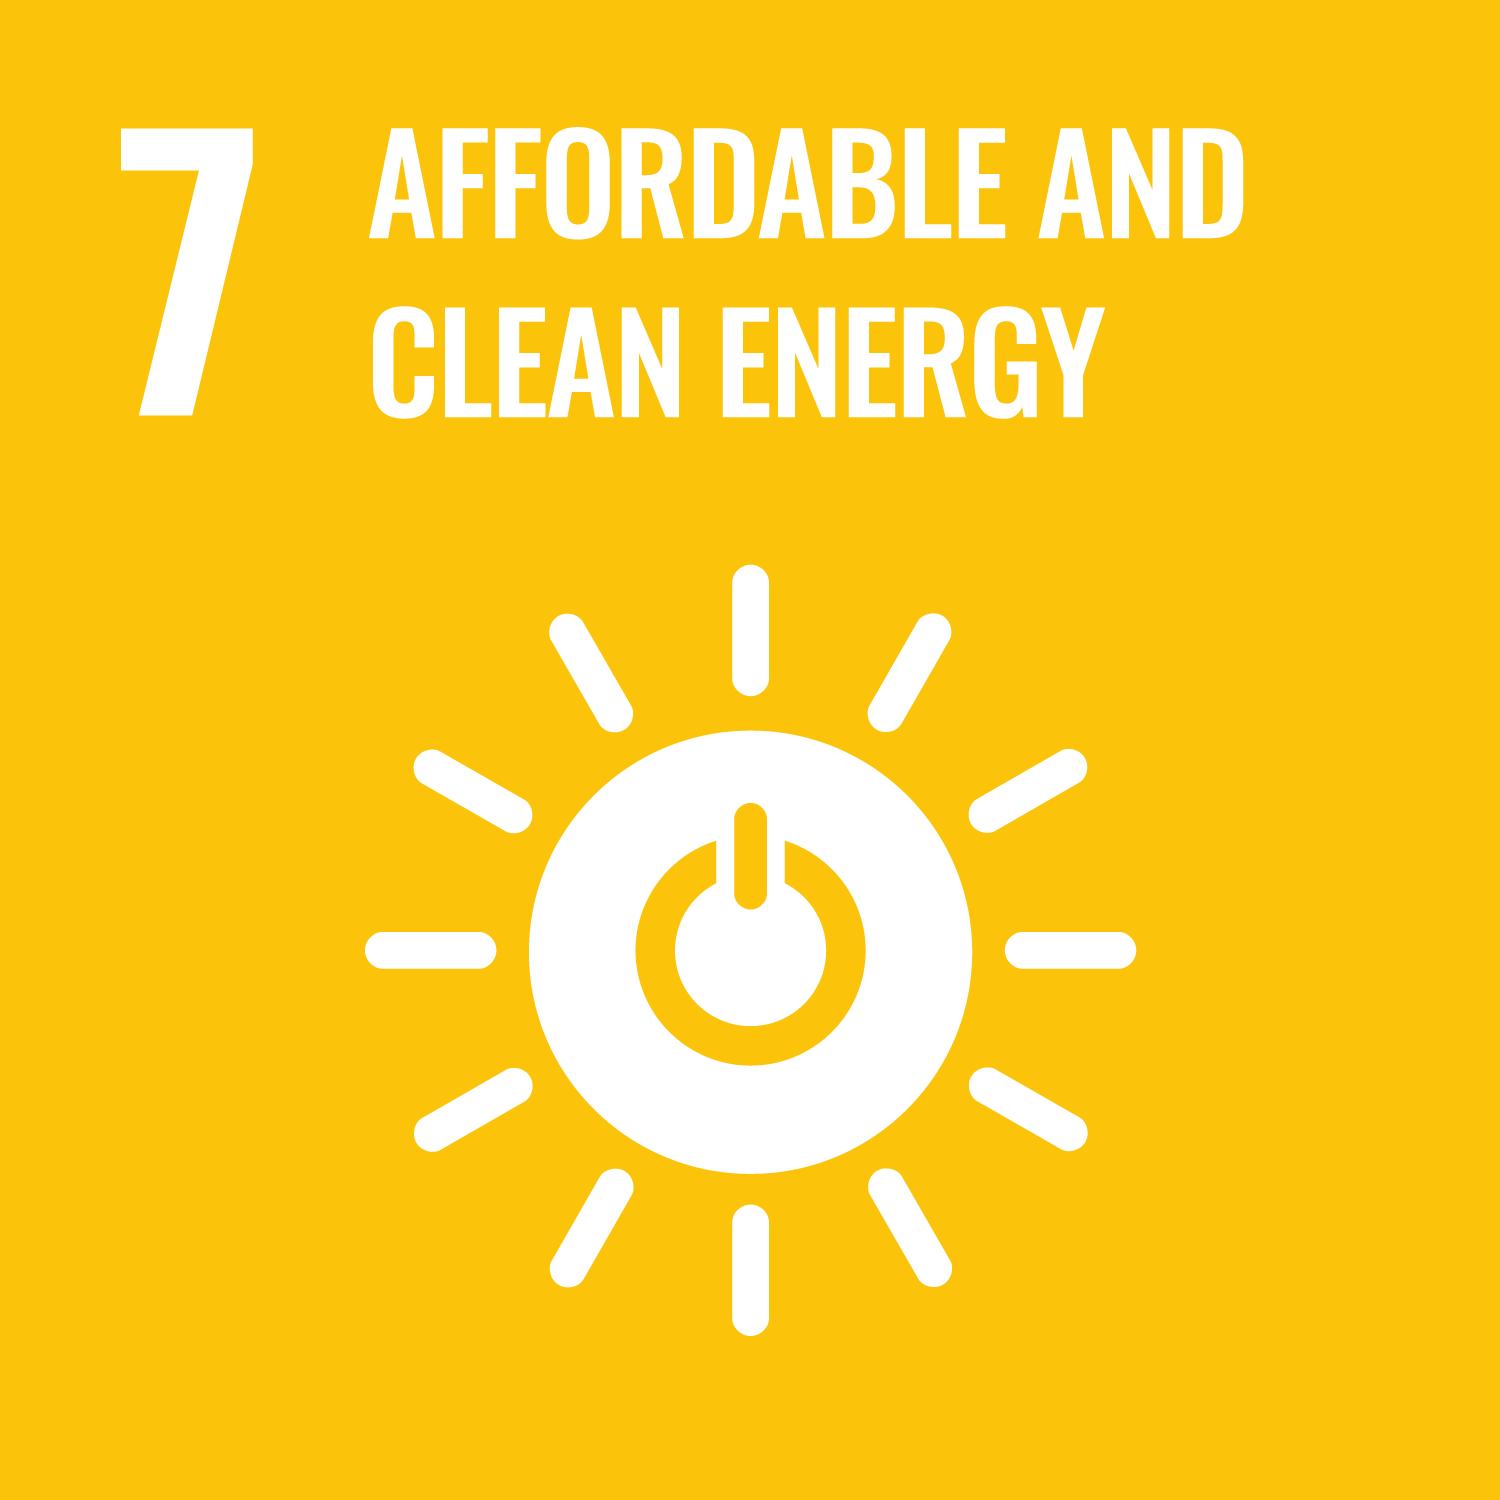 UNs Sustainable Development Goal 7 Affordable and clean energy. Link to UNs Sustainable development goal number 7